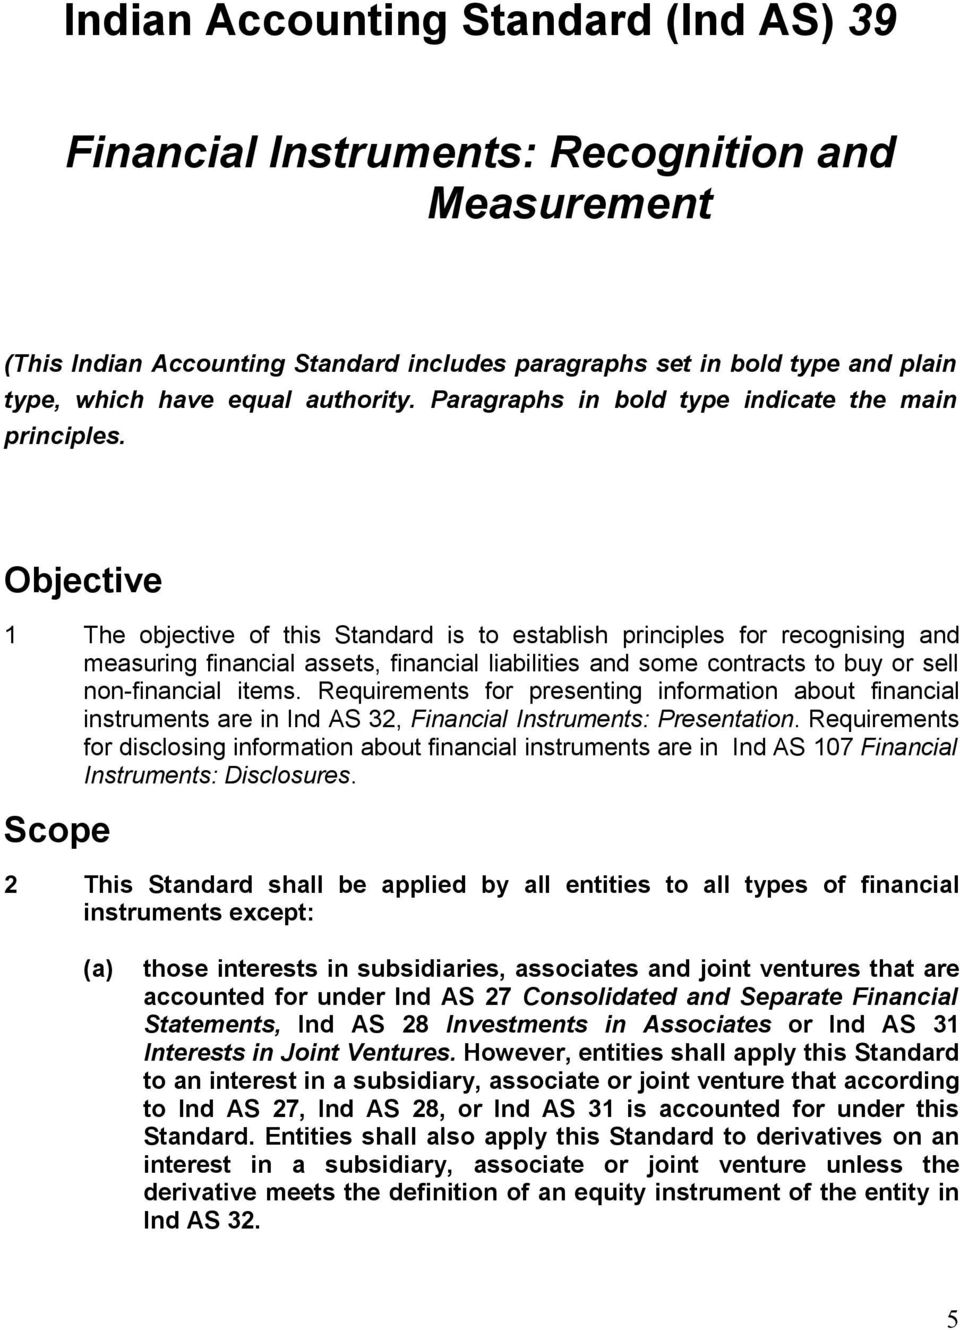 Objective 1 The objective of this Standard is to establish principles for recognising and measuring financial assets, financial liabilities and some contracts to buy or sell non-financial items.